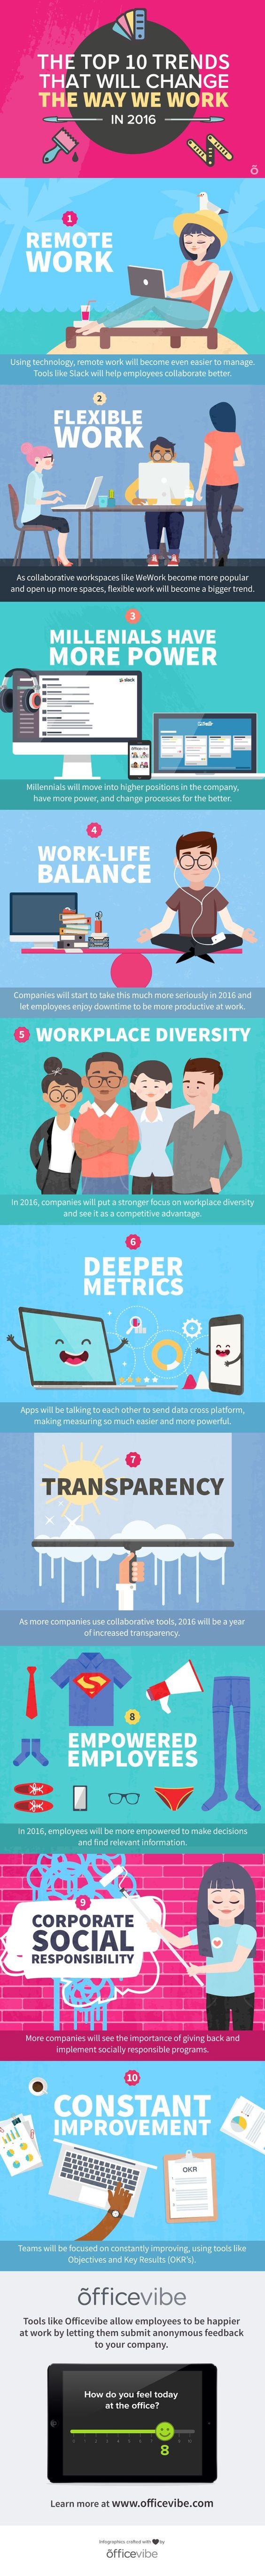 The Top 10 Trends That Will Change The Way We Work in 2016 #Infographic #Trends #Workplace (scheduled via http://www.tailwindapp.com?utm_source=pinterest&utm_medium=twpin&utm_content=post62473970&utm_campaign=scheduler_attribution)